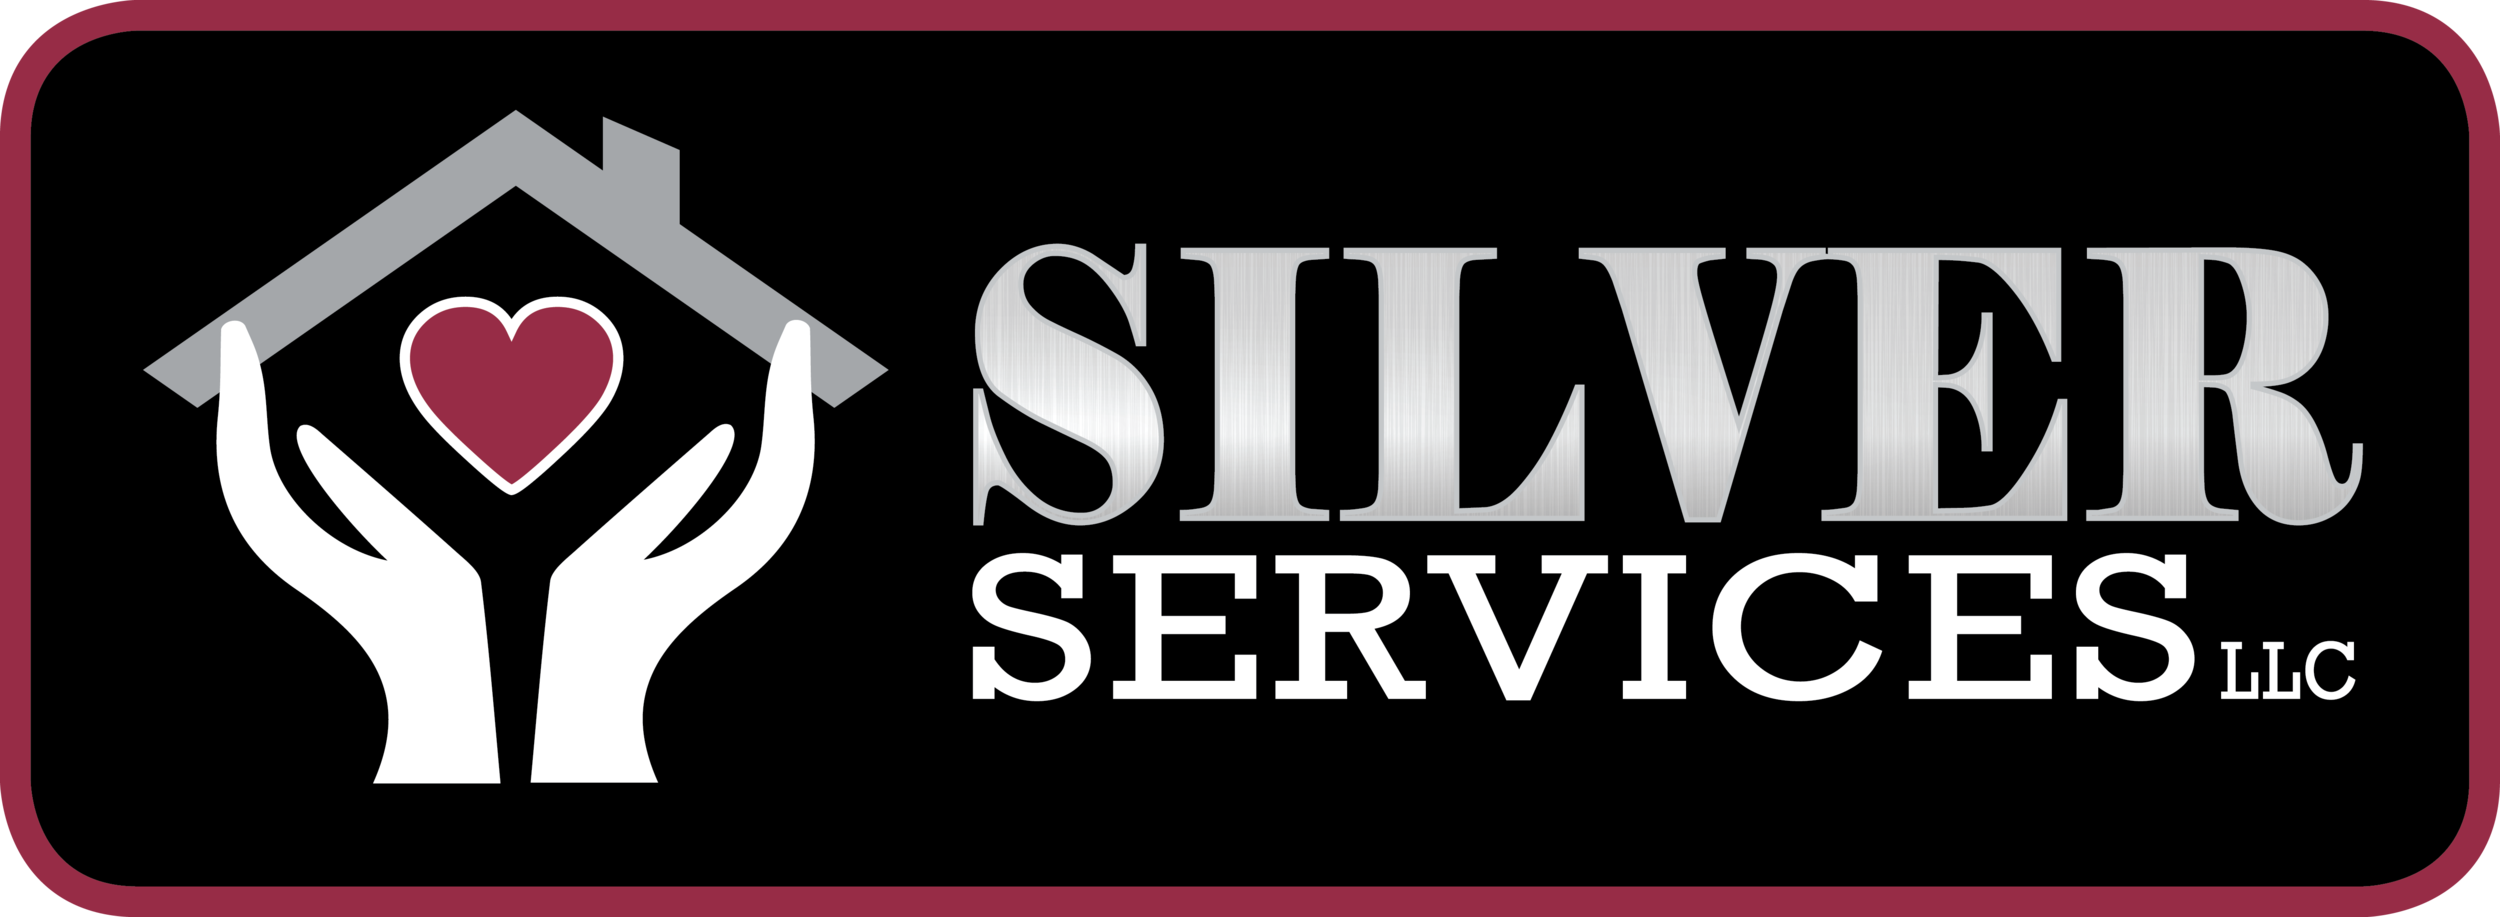 SilverServicesLogo_color_large (1).png